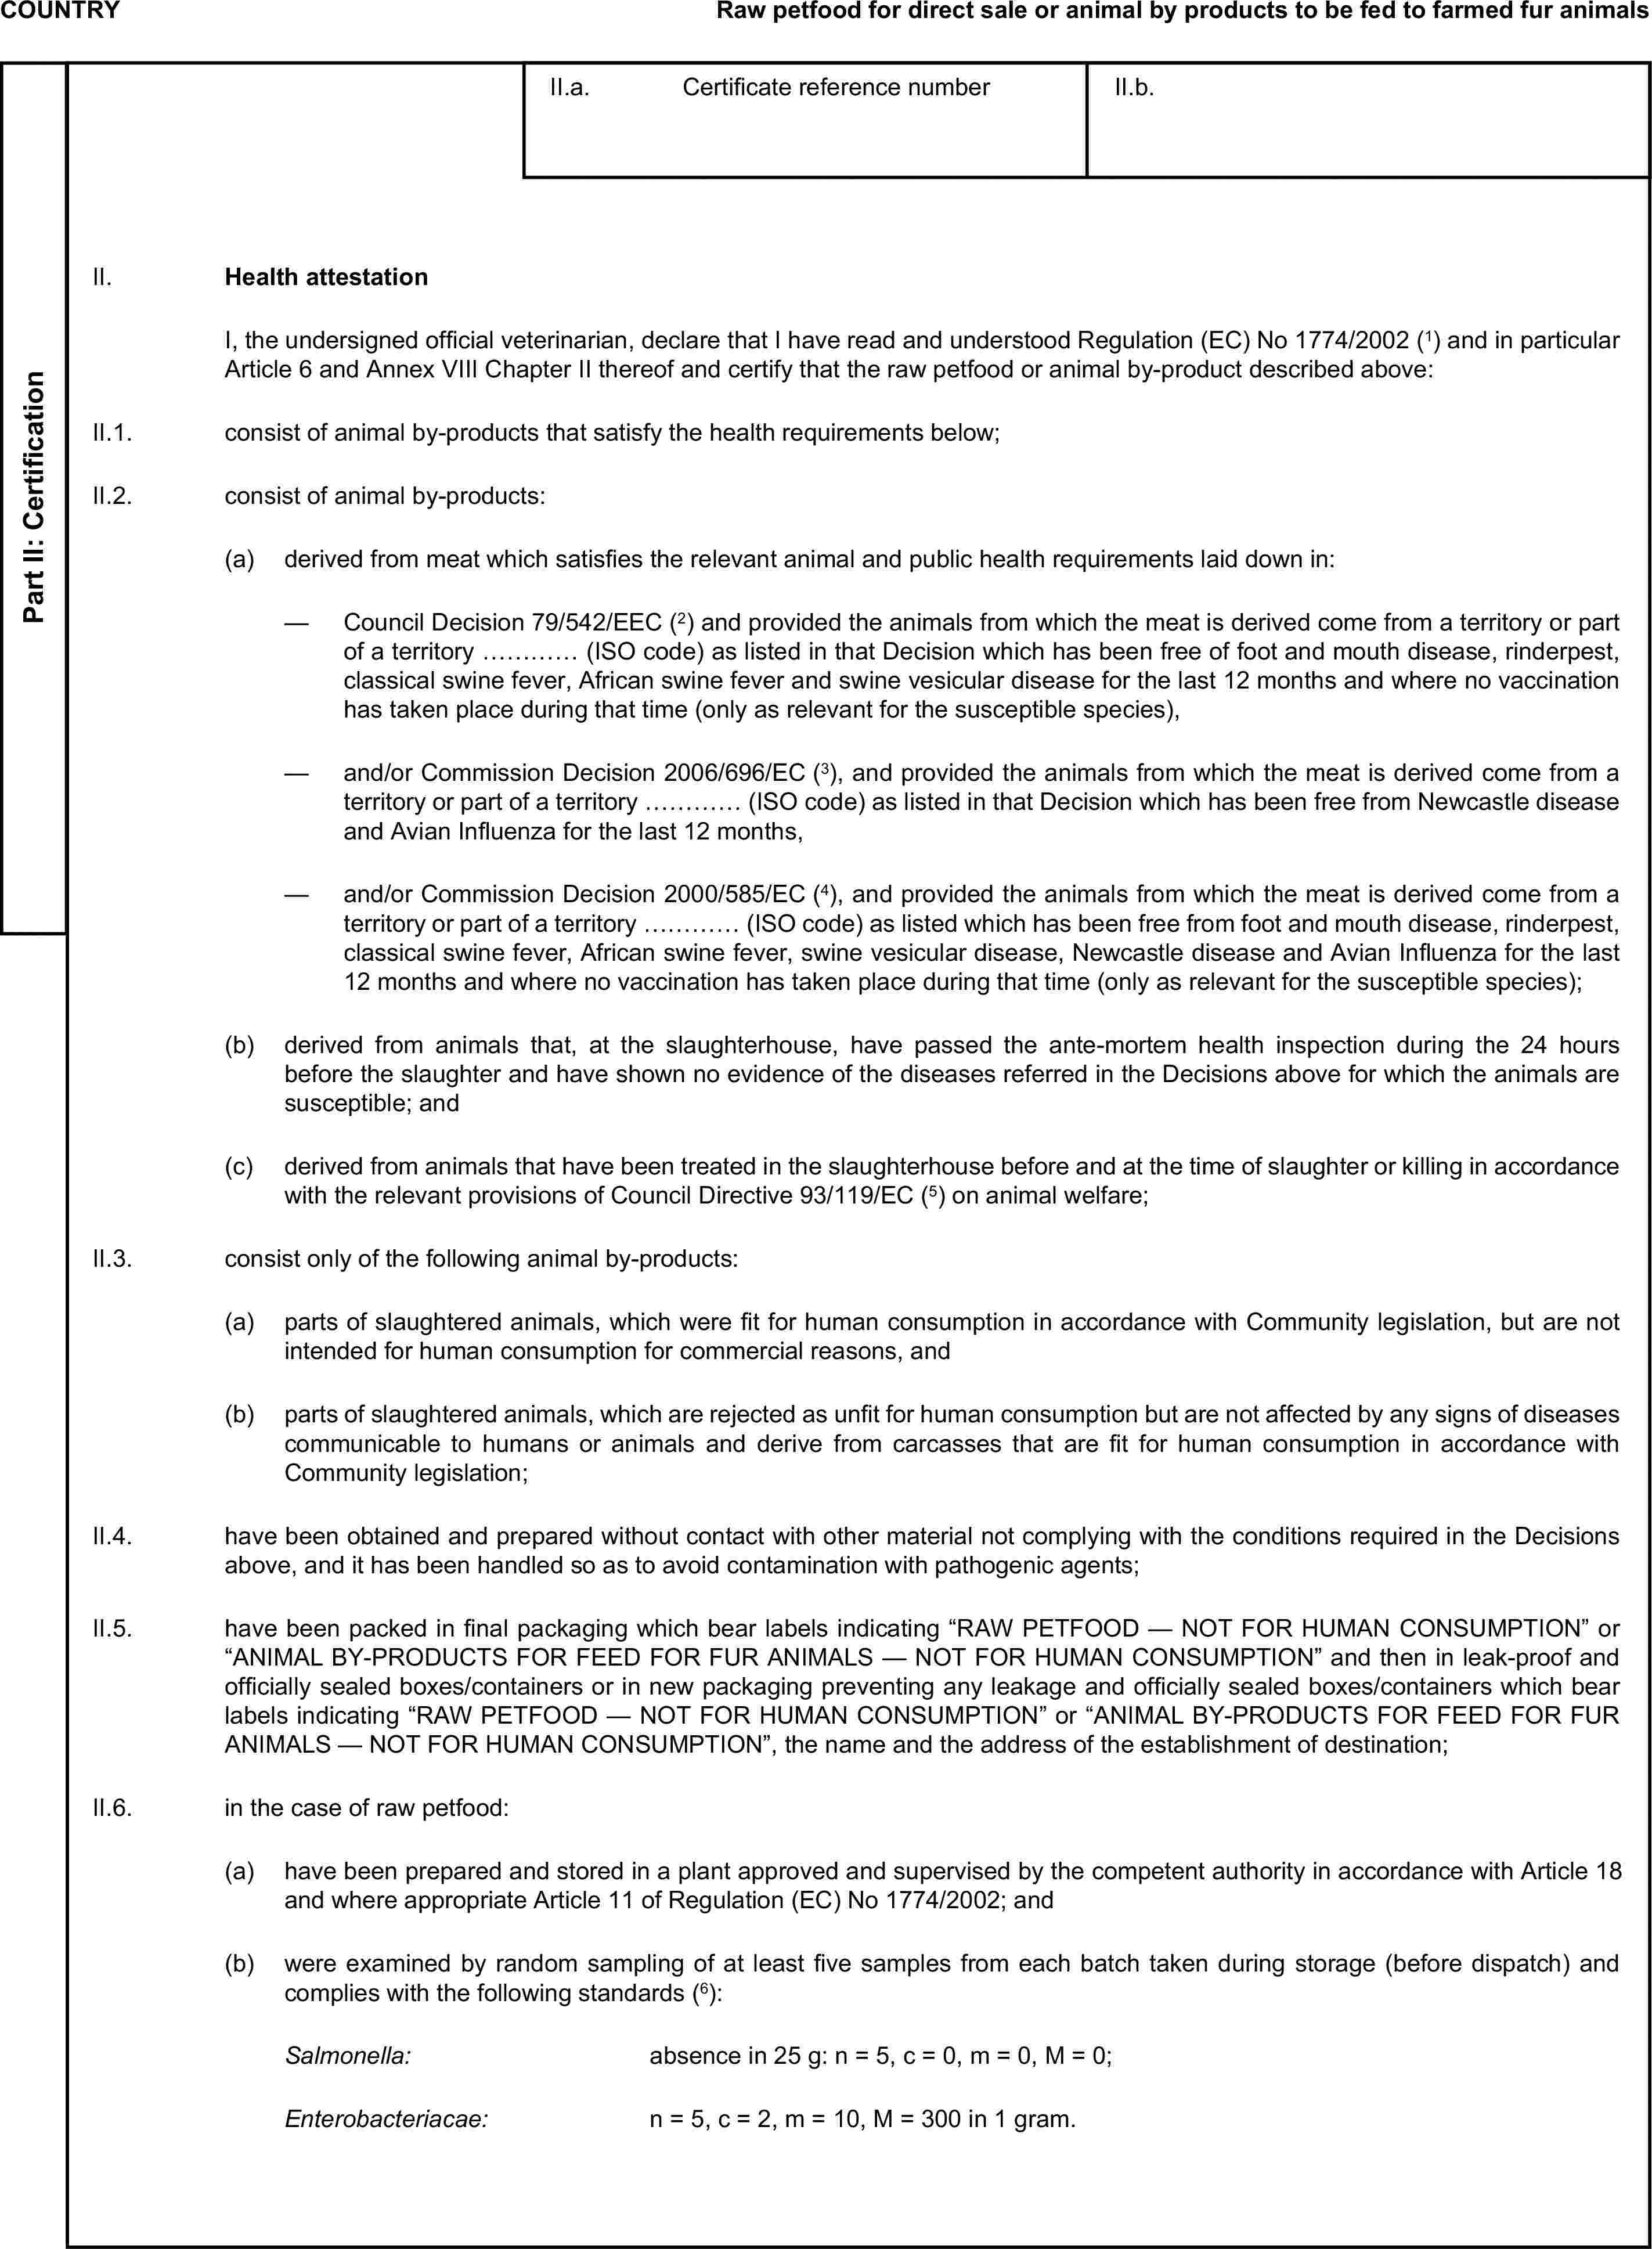 COUNTRYRaw petfood for direct sale or animal by products to be fed to farmed fur animalsII.a. Certificate reference numberII.b.II. Health attestationPart II: CertificationI, the undersigned official veterinarian, declare that I have read and understood Regulation (EC) No1774/2002(1) and in particular Article 6 and Annex VIII Chapter II thereof and certify that the raw petfood or animal by-product described above:II.1. consist of animal by-products that satisfy the health requirements below;II.2. consist of animal by-products:(a) derived from meat which satisfies the relevant animal and public health requirements laid down in:— Council Decision 79/542/EEC(2) and provided the animals from which the meat is derived come from a territory or part of a territory ………… (ISO code) as listed in that Decision which has been free of foot and mouth disease, rinderpest, classical swine fever, African swine fever and swine vesicular disease for the last 12 months and where no vaccination has taken place during that time (only as relevant for the susceptible species),— and/or Commission Decision 2006/696/EC(3), and provided the animals from which the meat is derived come from a territory or part of a territory ………… (ISO code) as listed in that Decision which has been free from Newcastle disease and Avian Influenza for the last 12 months,— and/or Commission Decision 2000/585/EC(4), and provided the animals from which the meat is derived come from a territory or part of a territory ………… (ISO code) as listed which has been free from foot and mouth disease, rinderpest, classical swine fever, African swine fever, swine vesicular disease, Newcastle disease and Avian Influenza for the last 12 months and where no vaccination has taken place during that time (only as relevant for the susceptible species);(b) derived from animals that, at the slaughterhouse, have passed the ante-mortem health inspection during the 24 hours before the slaughter and have shown no evidence of the diseases refer